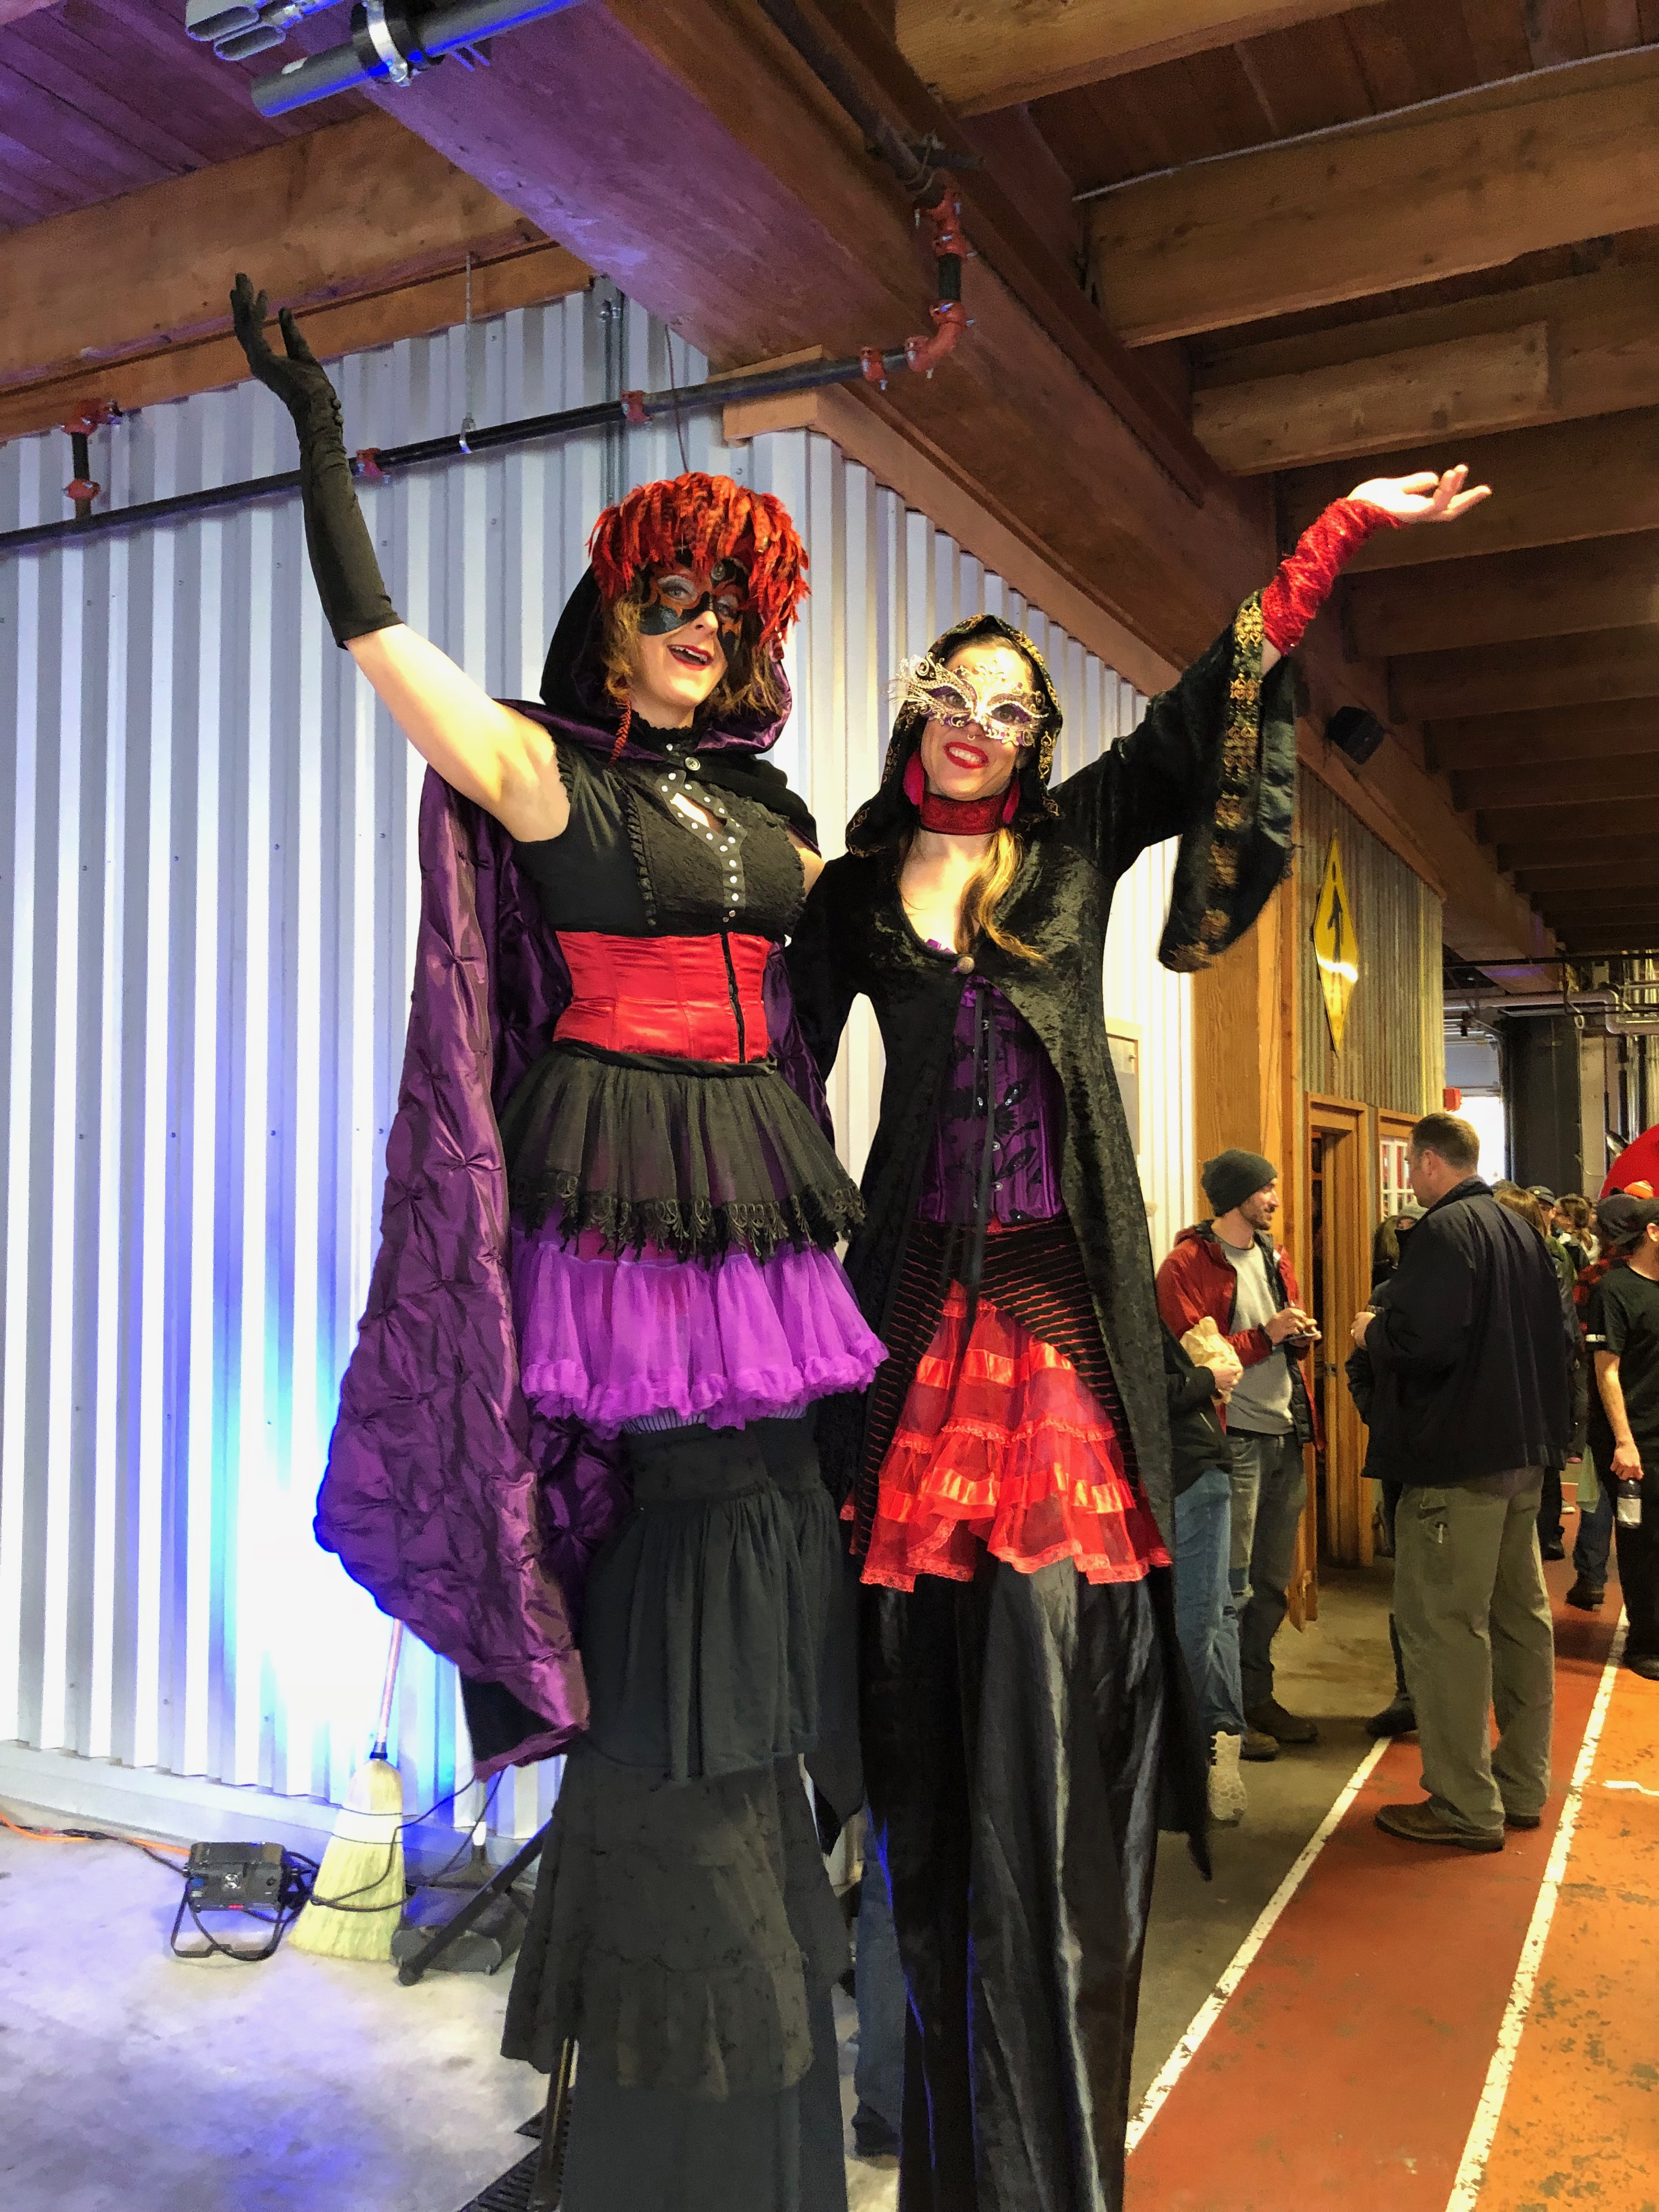 Stilt walkers at the 2018 Festival of Dark Arts at Fort George Brewery.